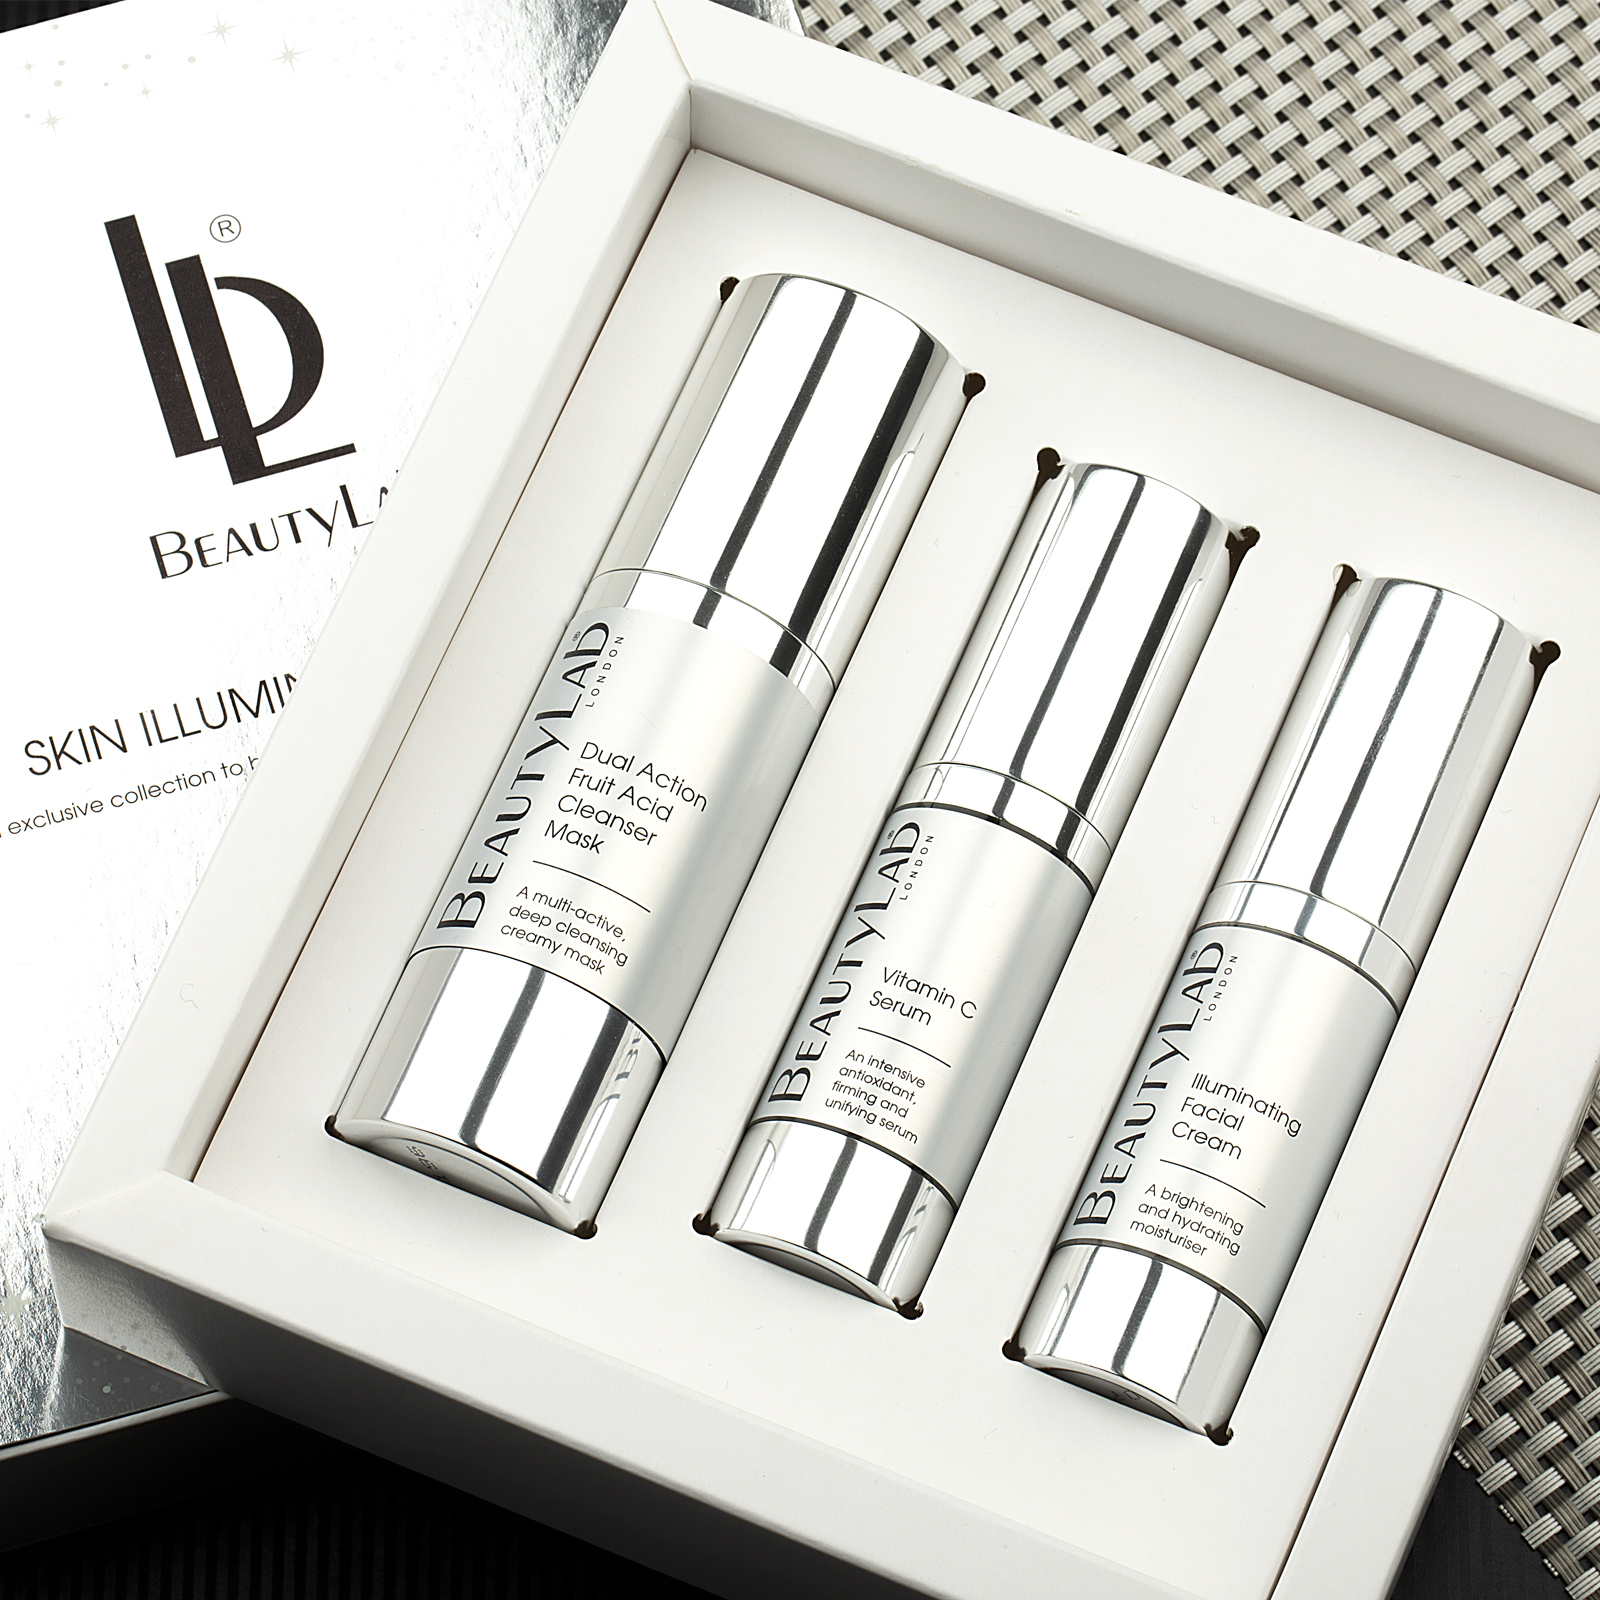 Skin Illuminating Beauty Gift Set products